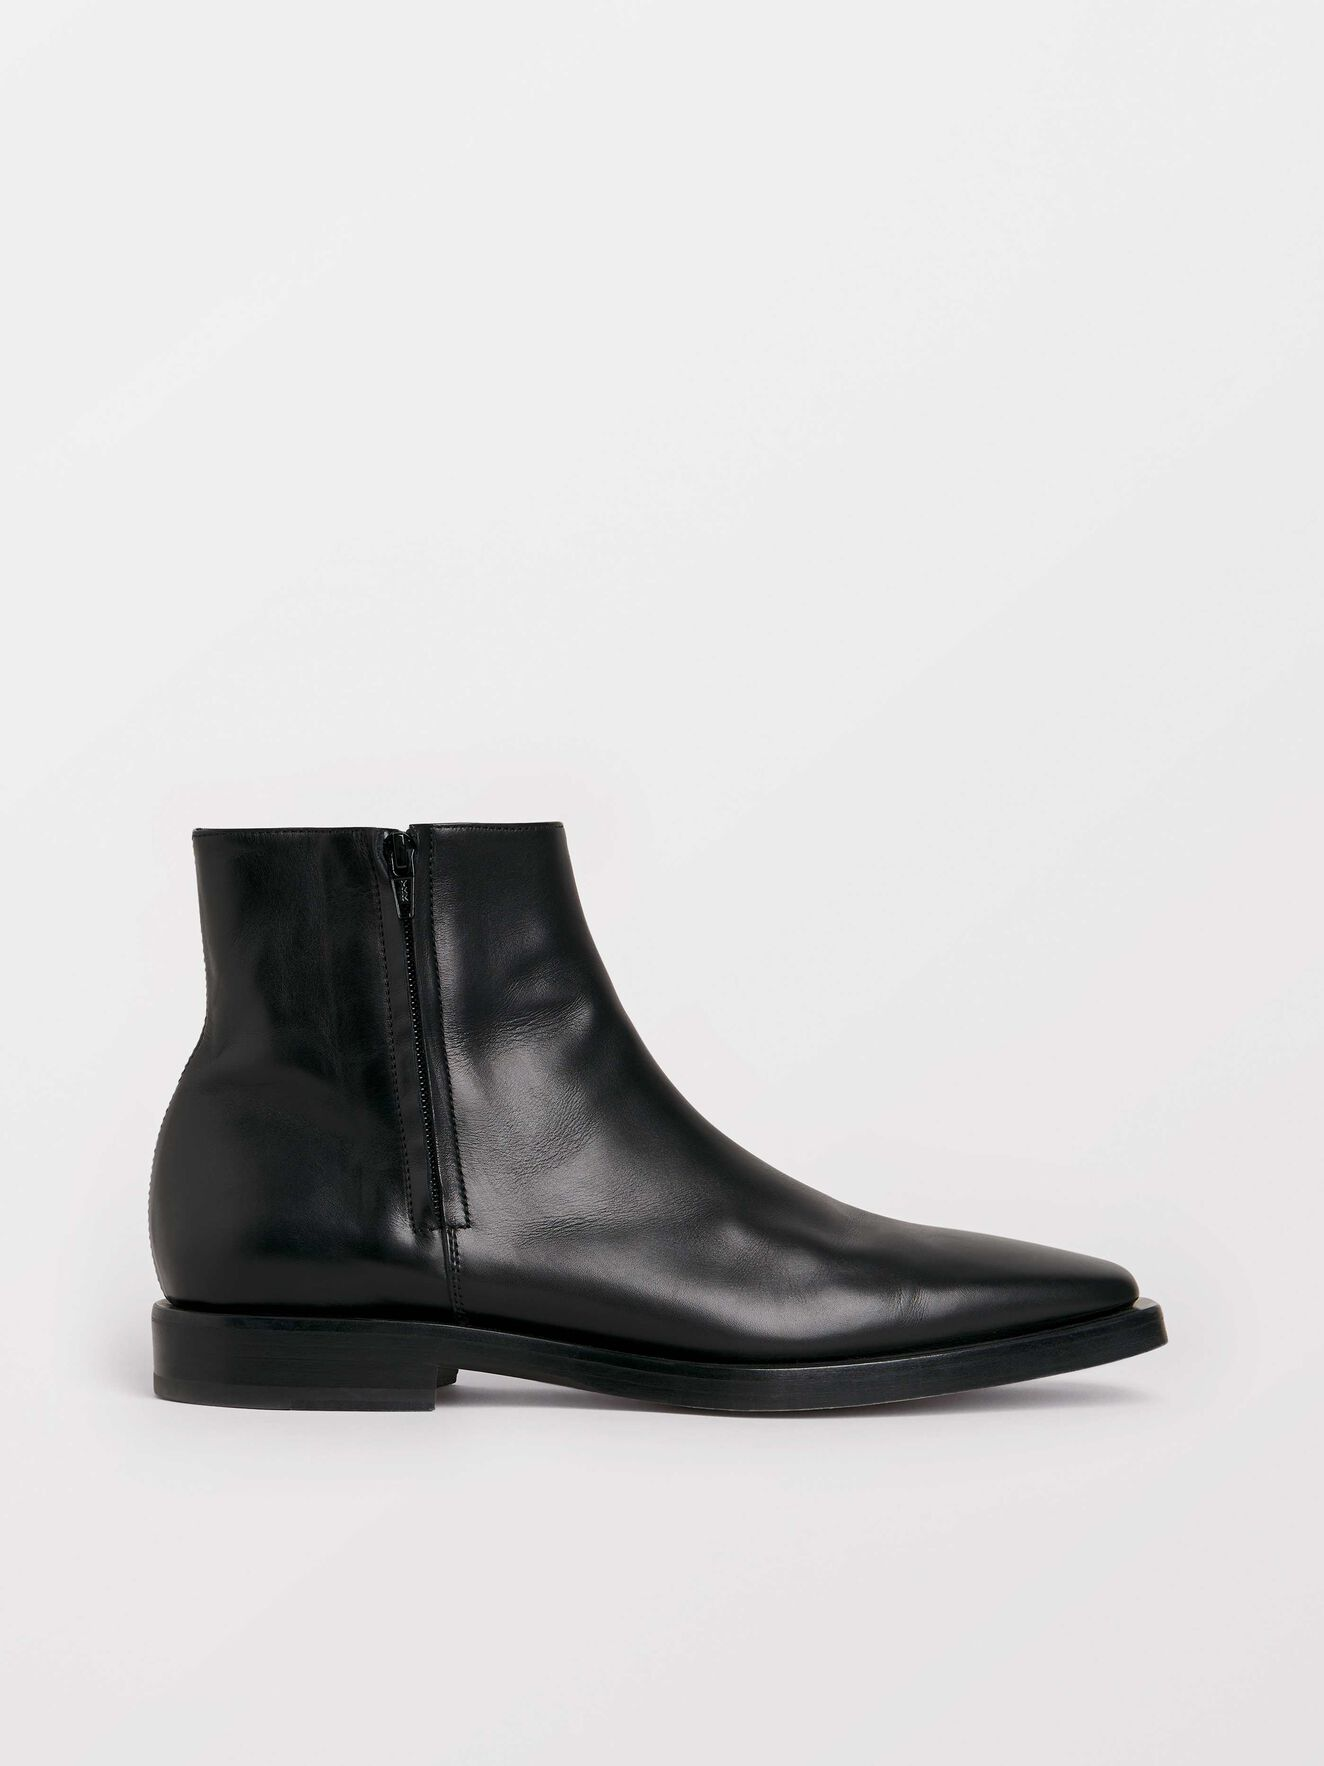 Bottines Bartis in Black from Tiger of Sweden